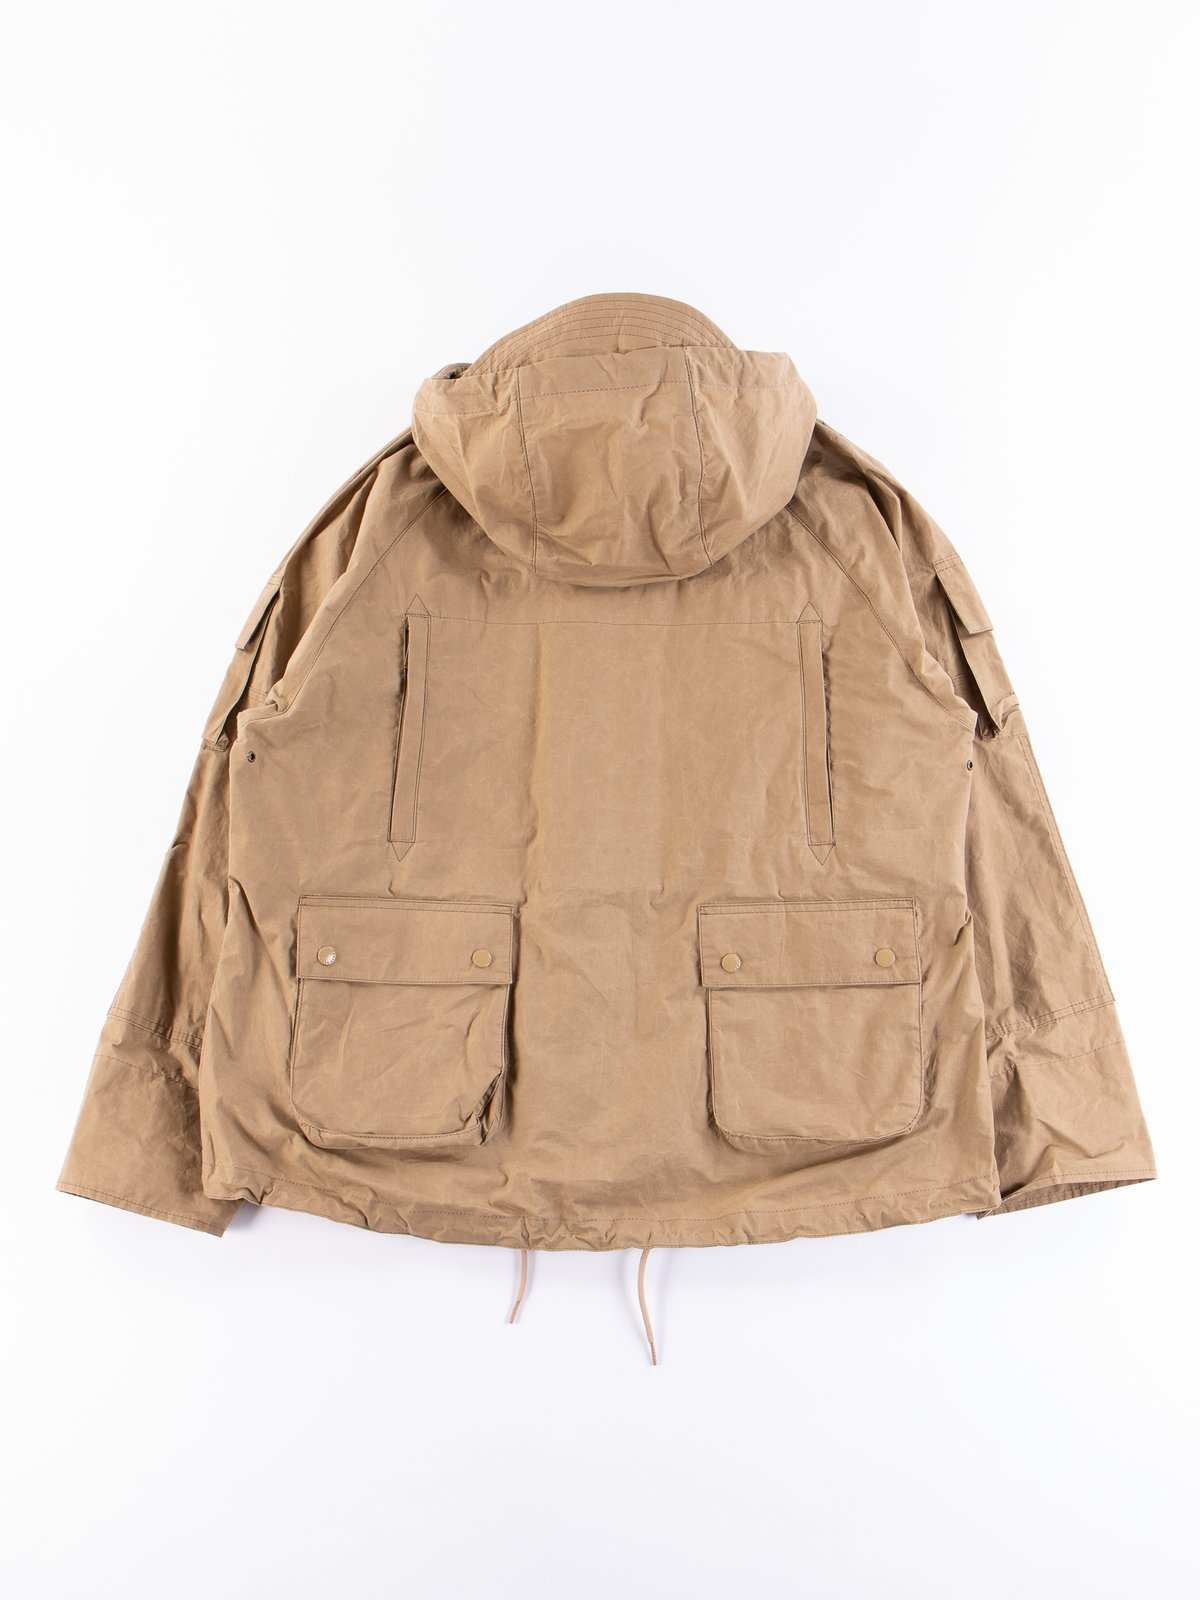 Sand Thompson Jacket - Image 6